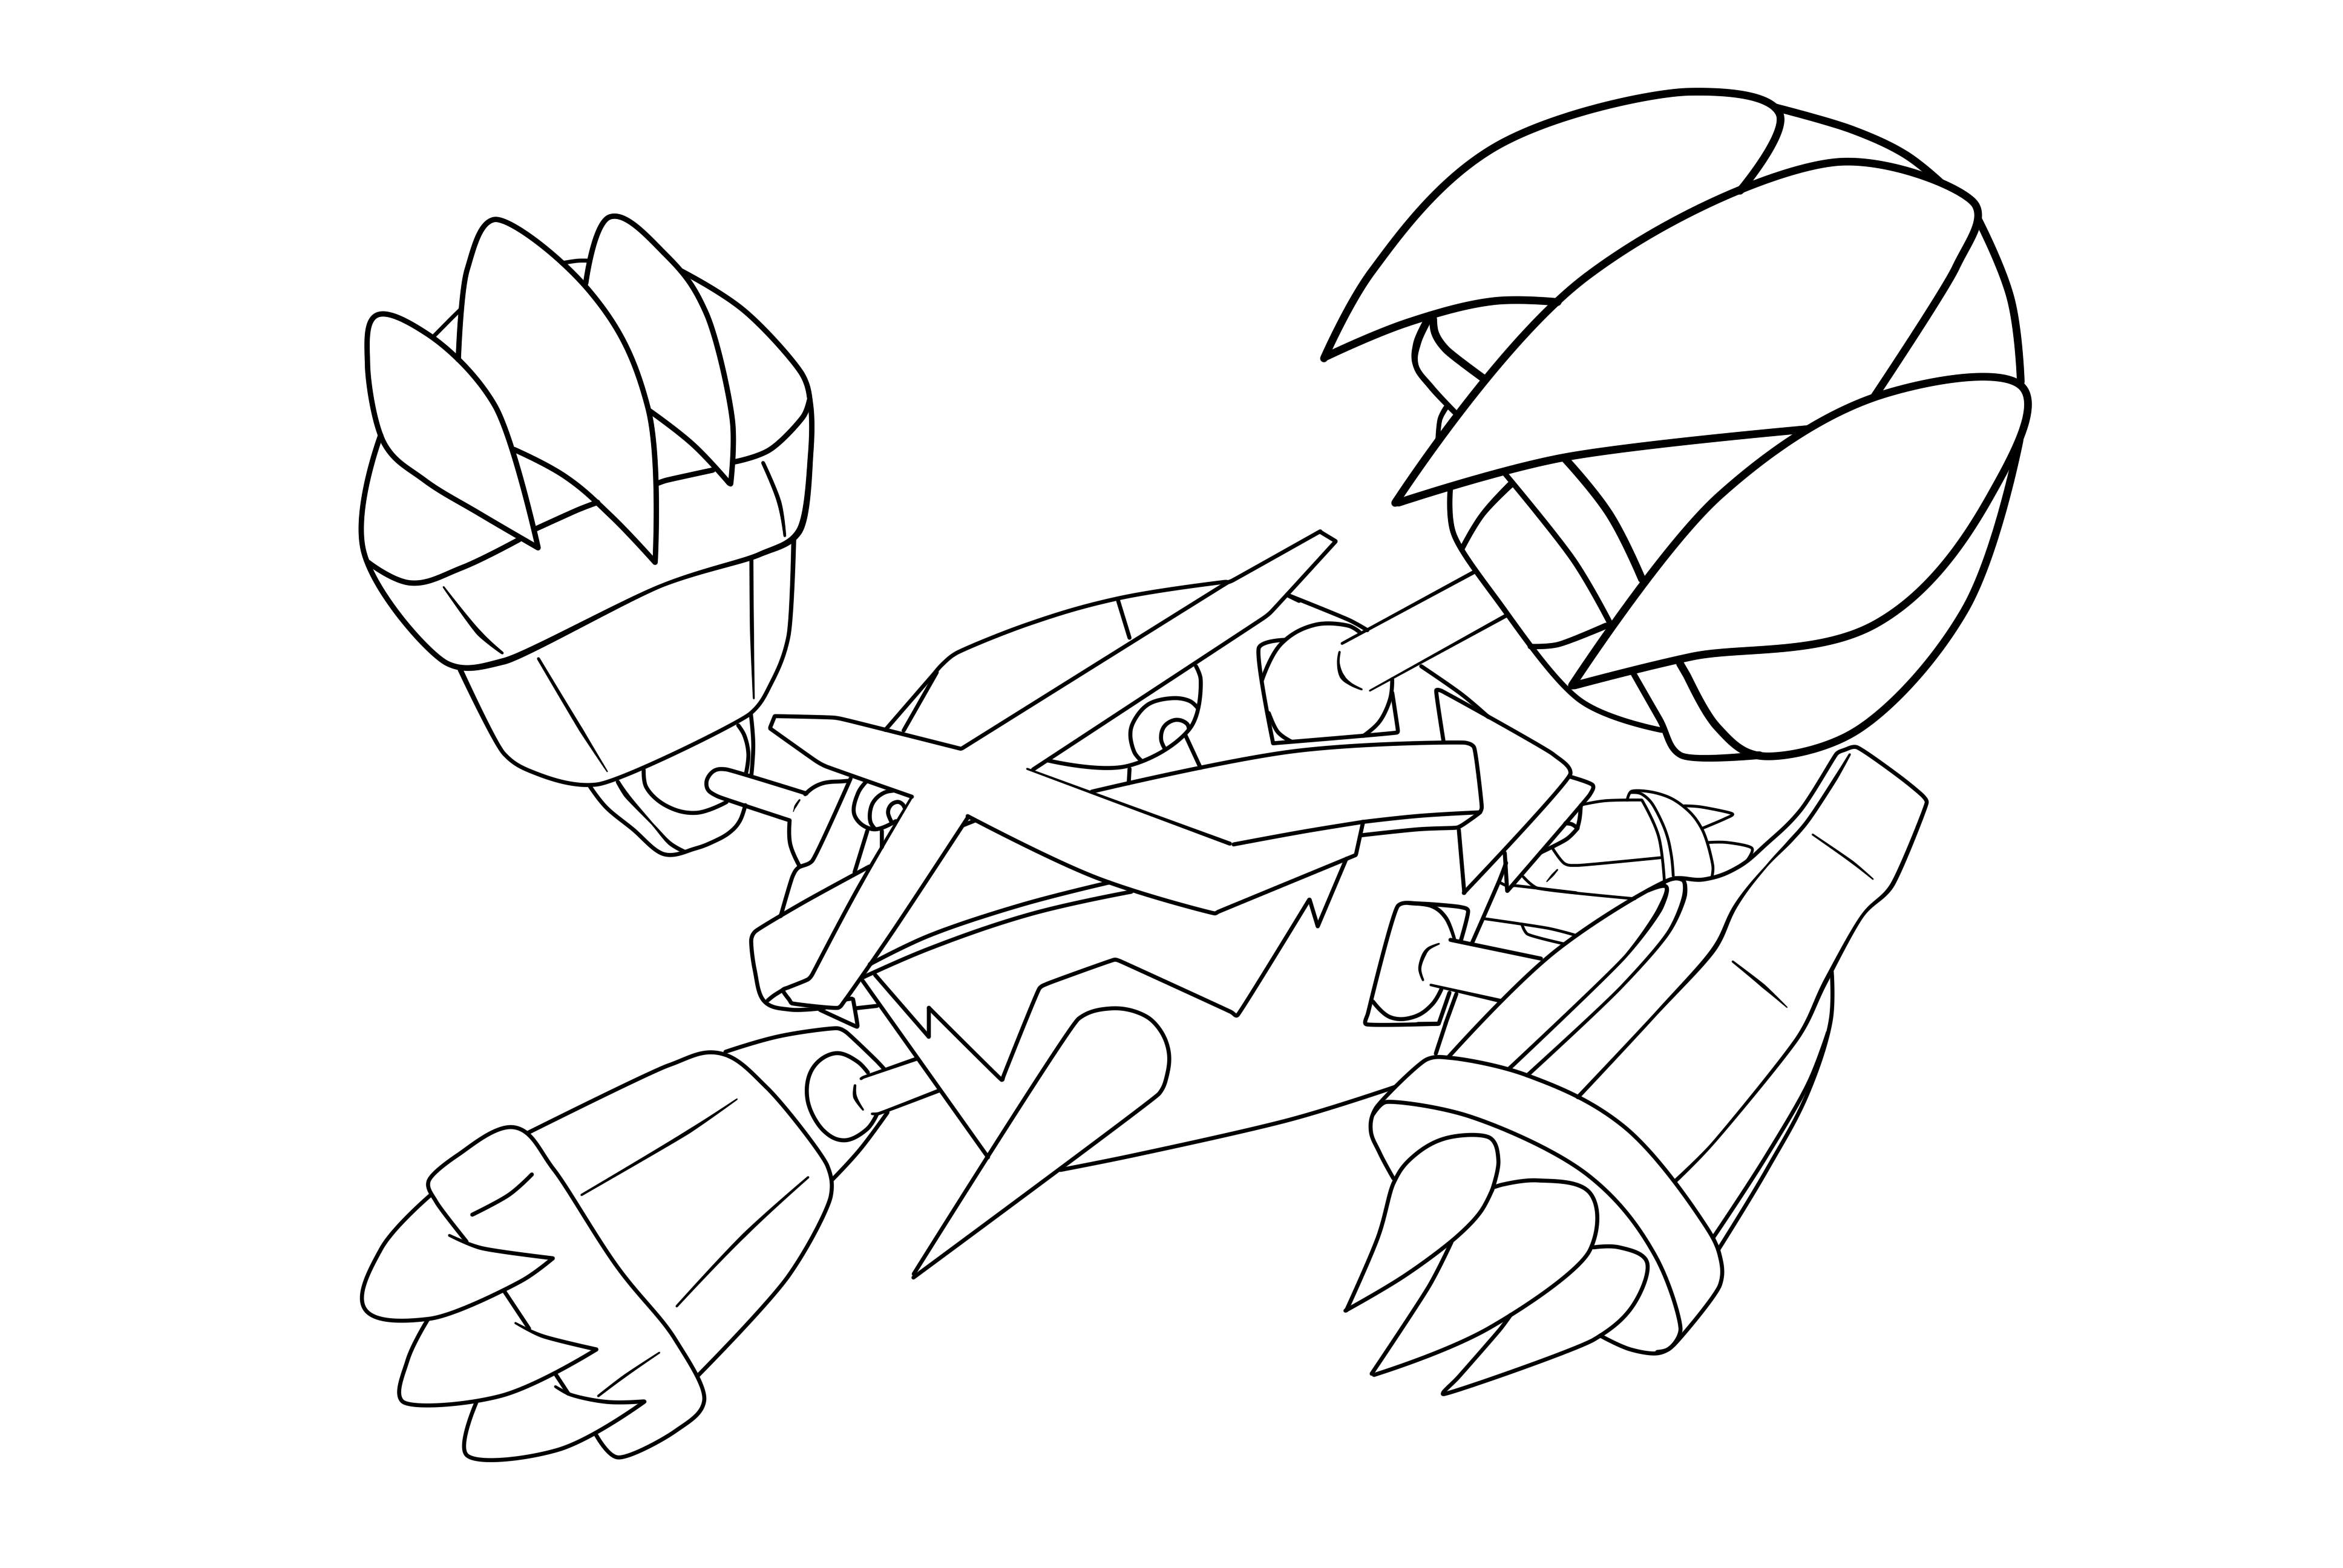 metagross pokemon coloring pages - photo#11